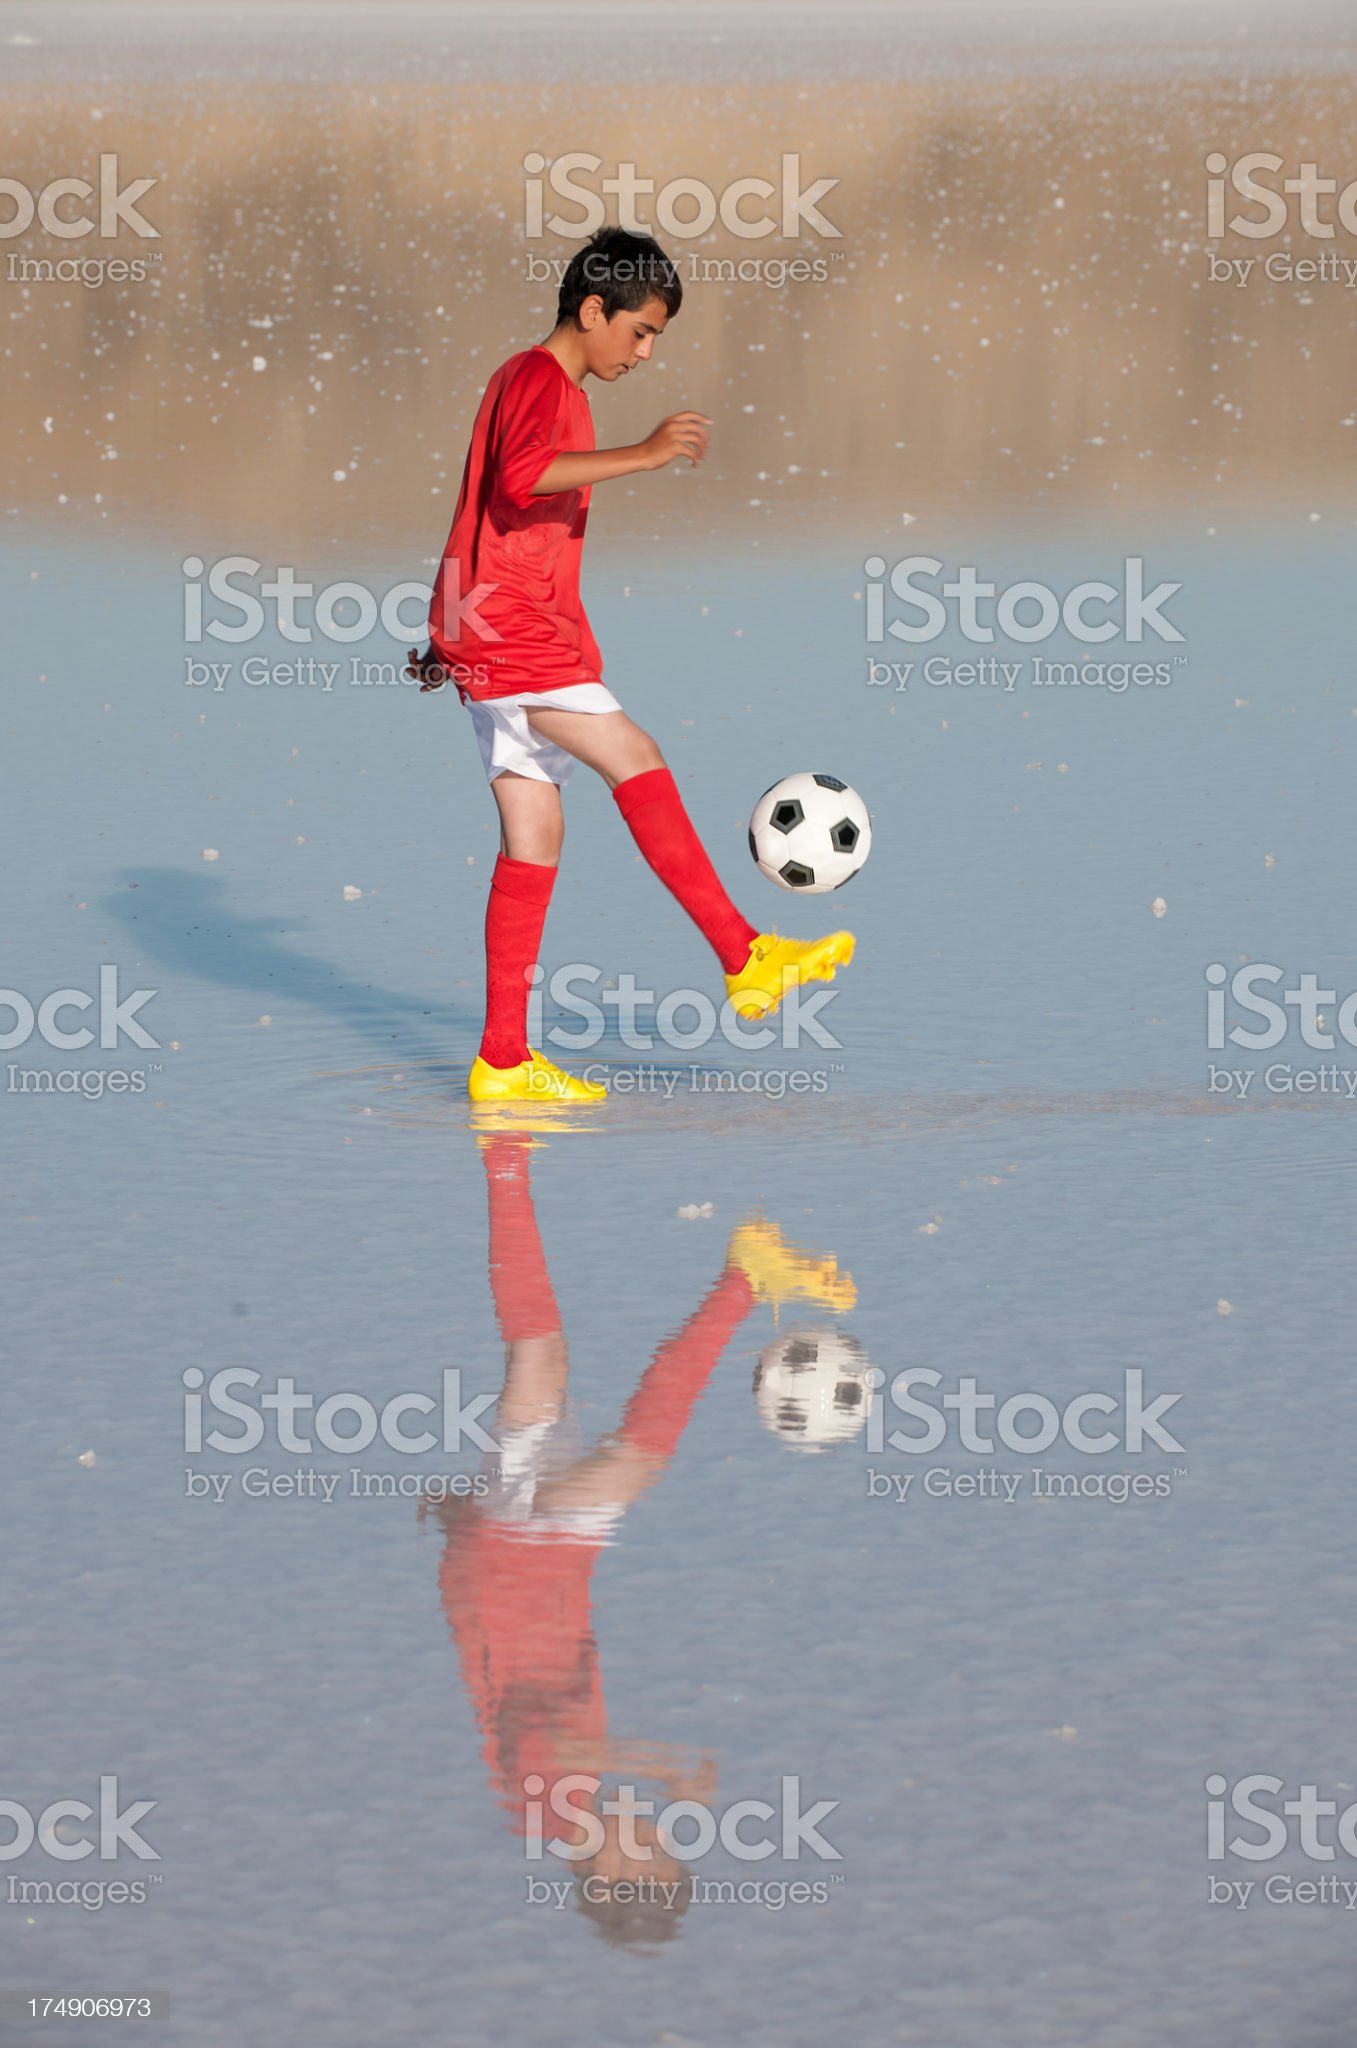 young soccer royalty-free stock photo